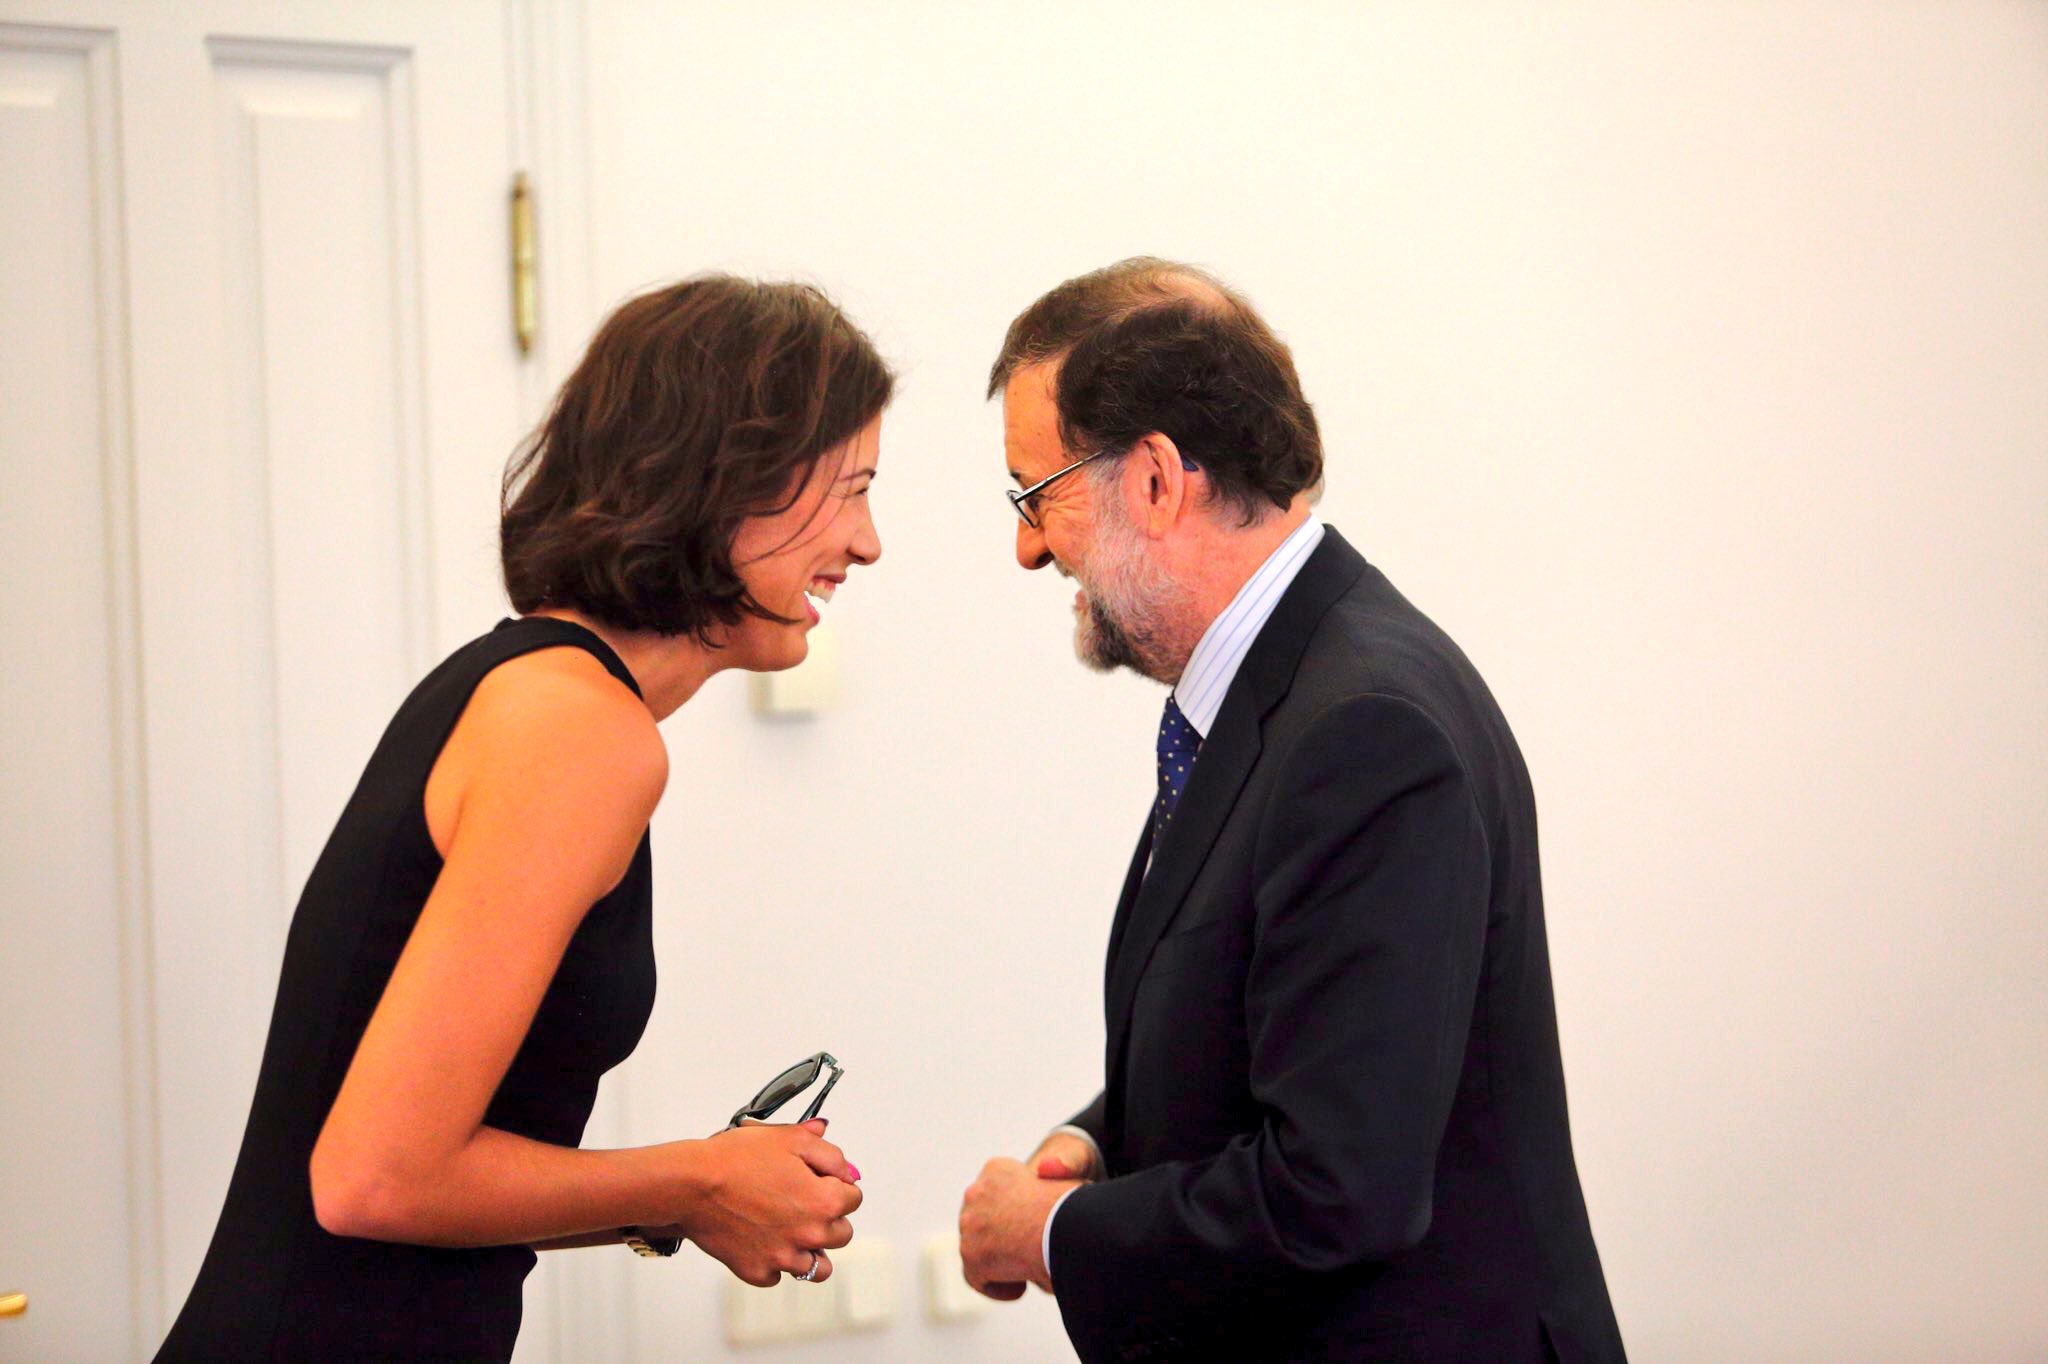 Un placer conocerle @marianorajoy Pleasure meeting the president  �� https://t.co/SnYiL8Hd9D